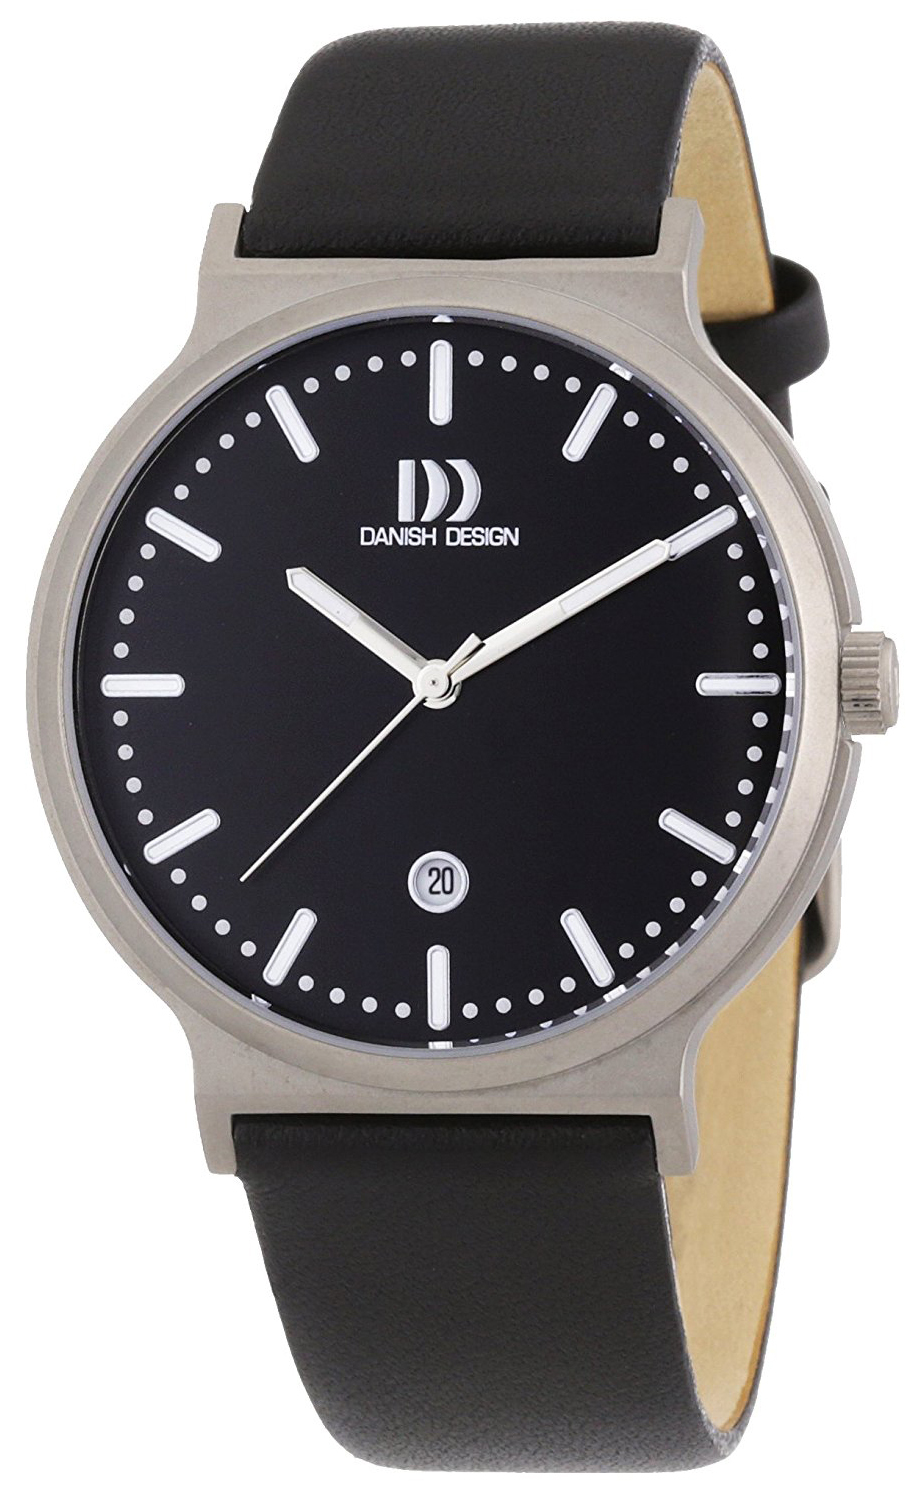 Danish Design Classic Herrklocka 3316310 Svart/Läder Ø40 mm - Danish Design